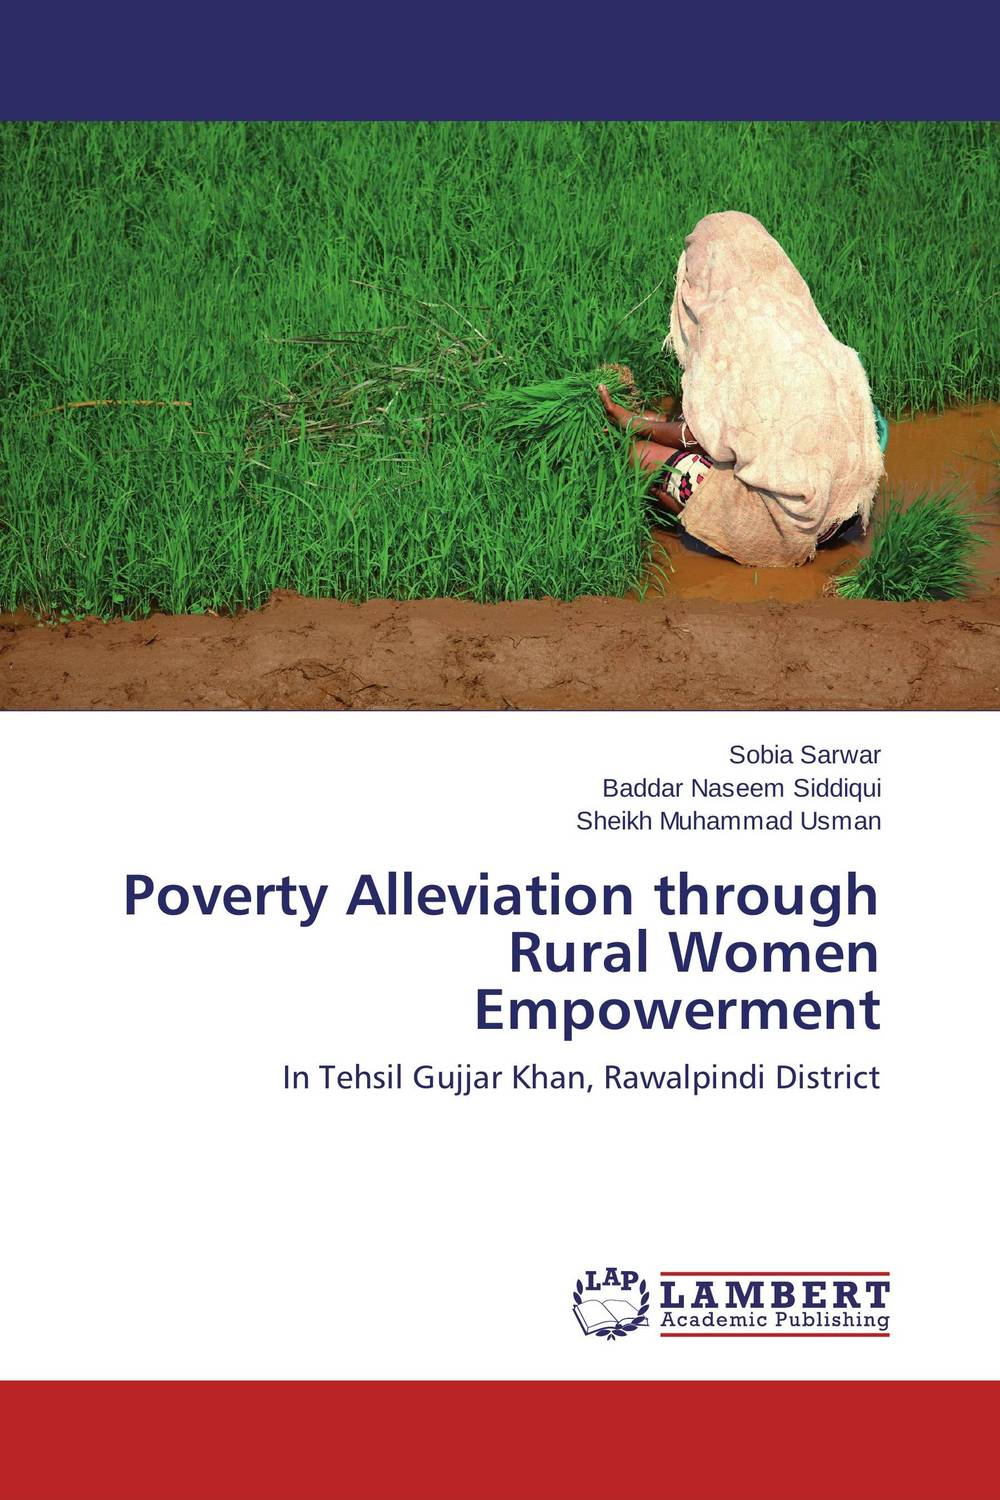 Poverty Alleviation through Rural Women Empowerment role of ict in rural poverty alleviation